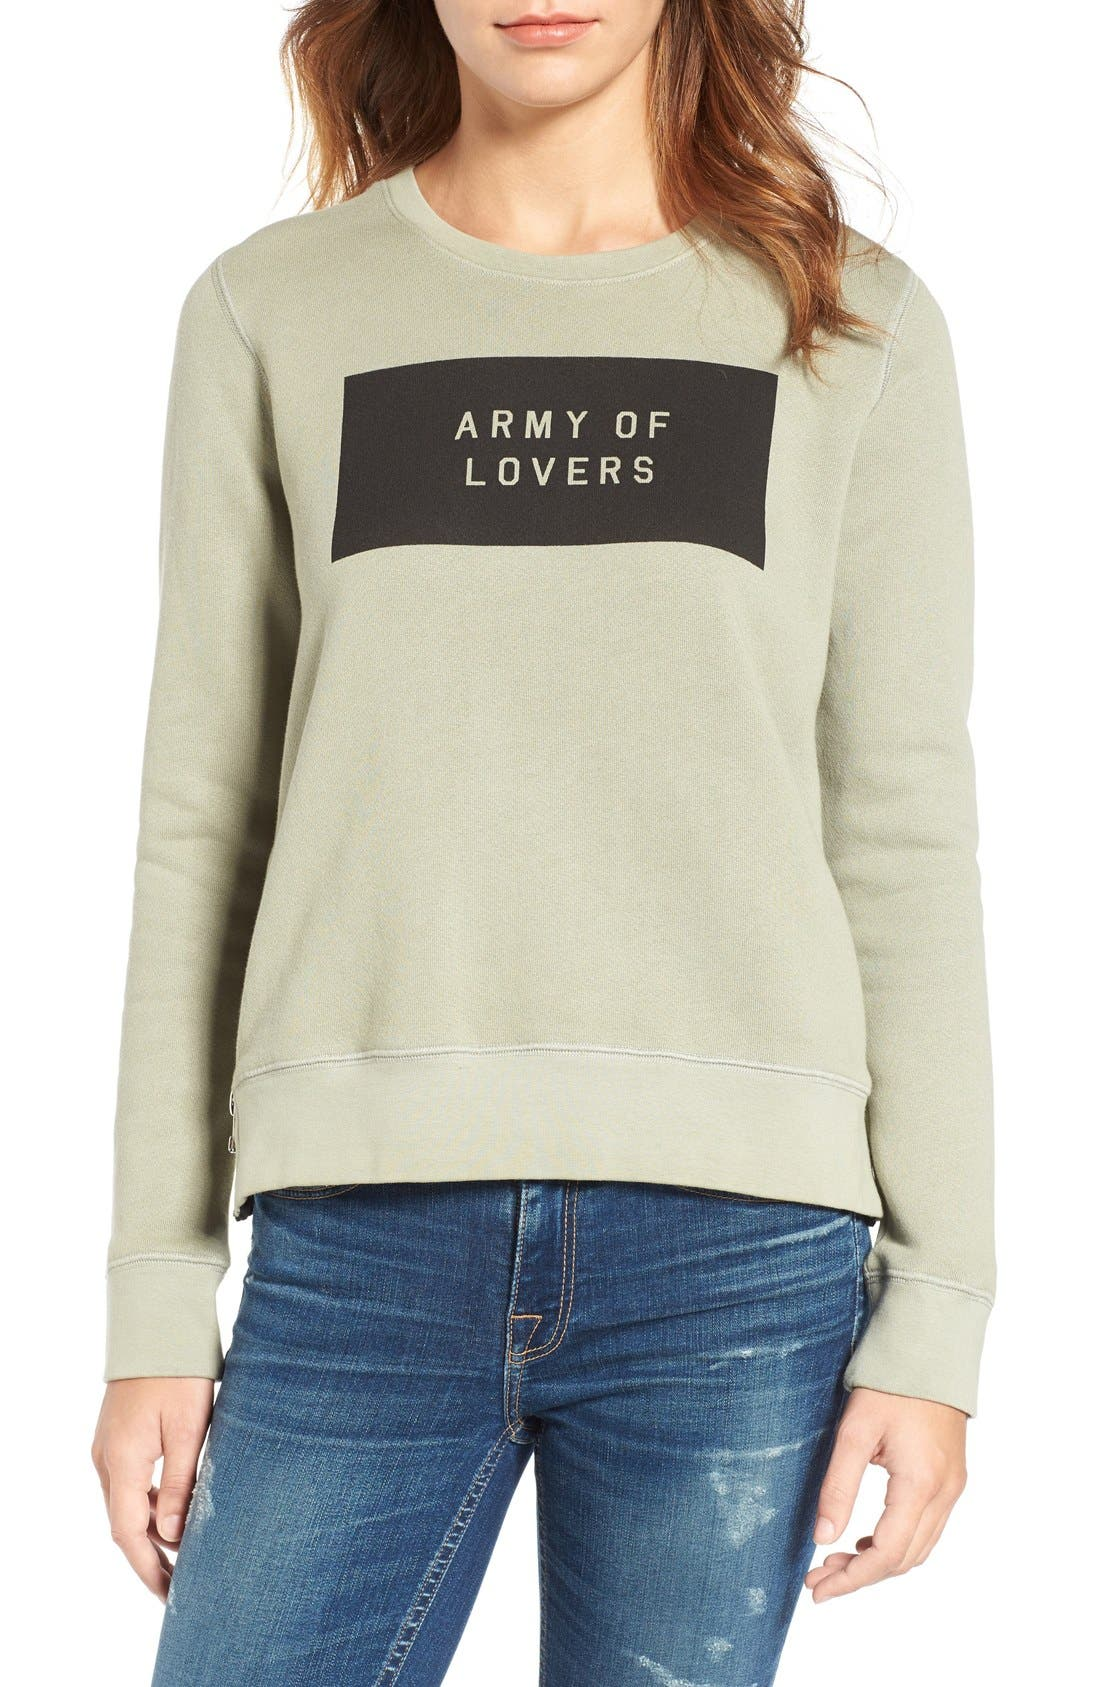 Army of Lovers Side Zip Sweatshirt,                             Main thumbnail 1, color,                             Army